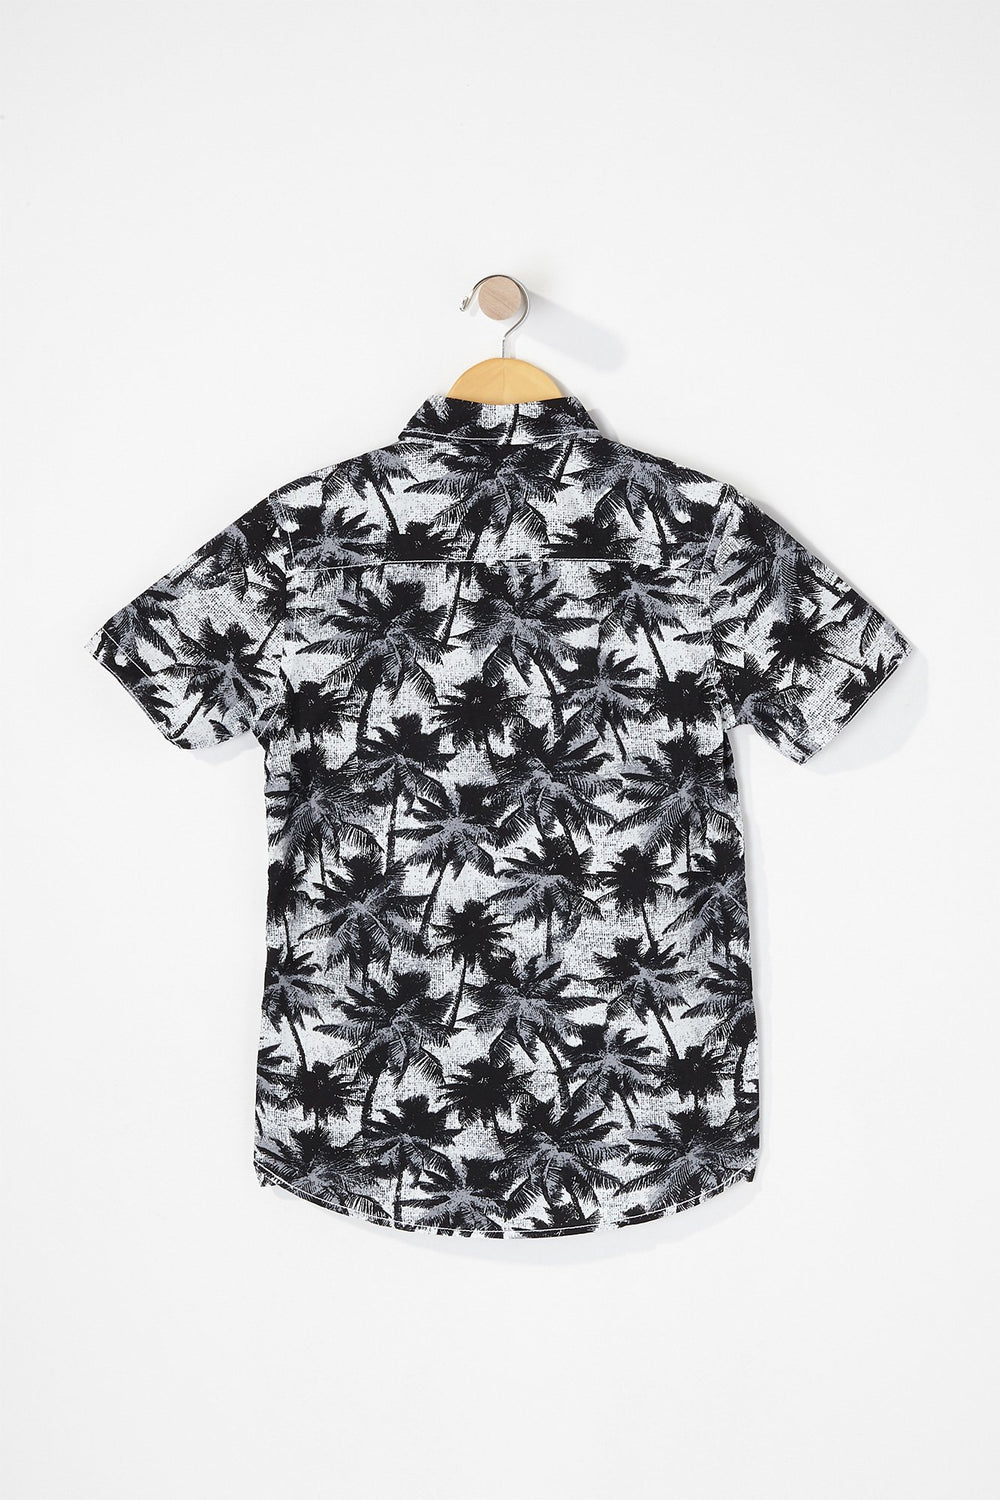 West49 Boys Graphic Button-Up Shirt Black